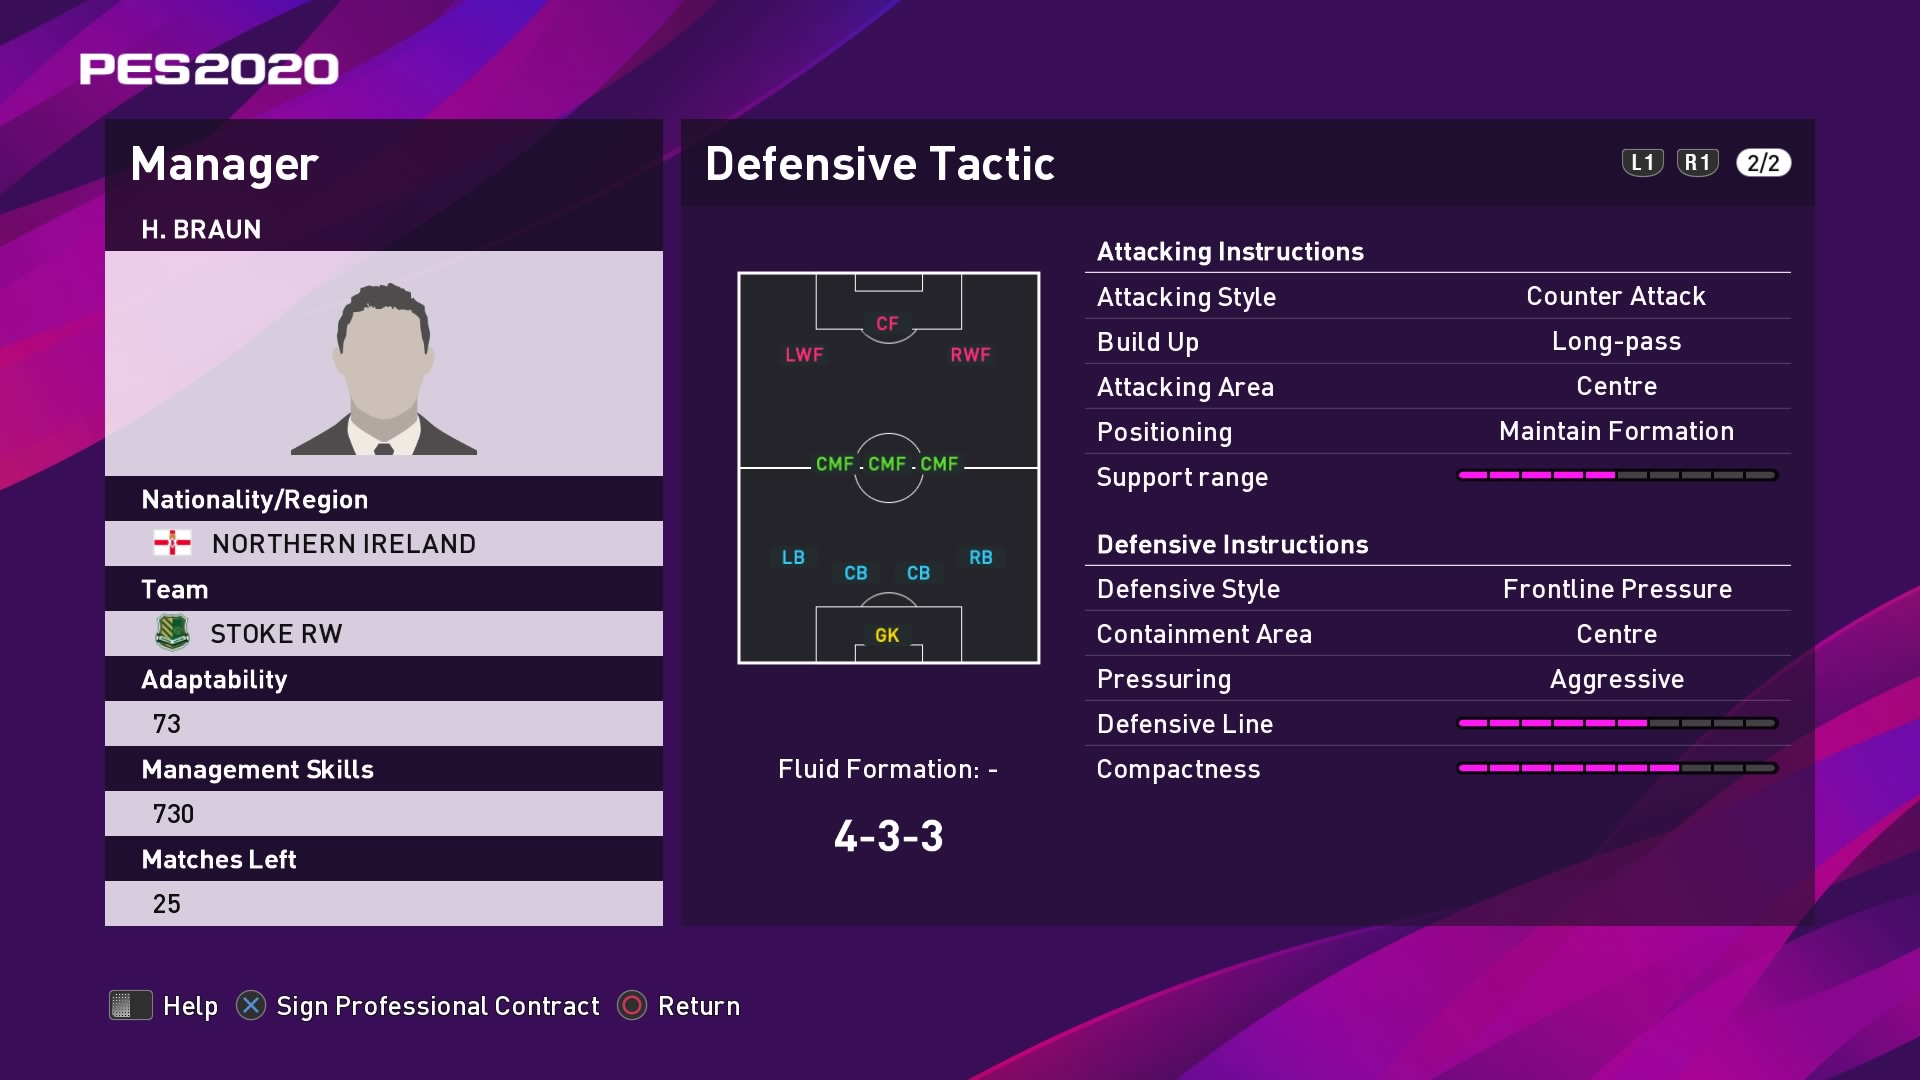 H. Braun (Michael O'Neill) Defensive Tactic in PES 2020 myClub